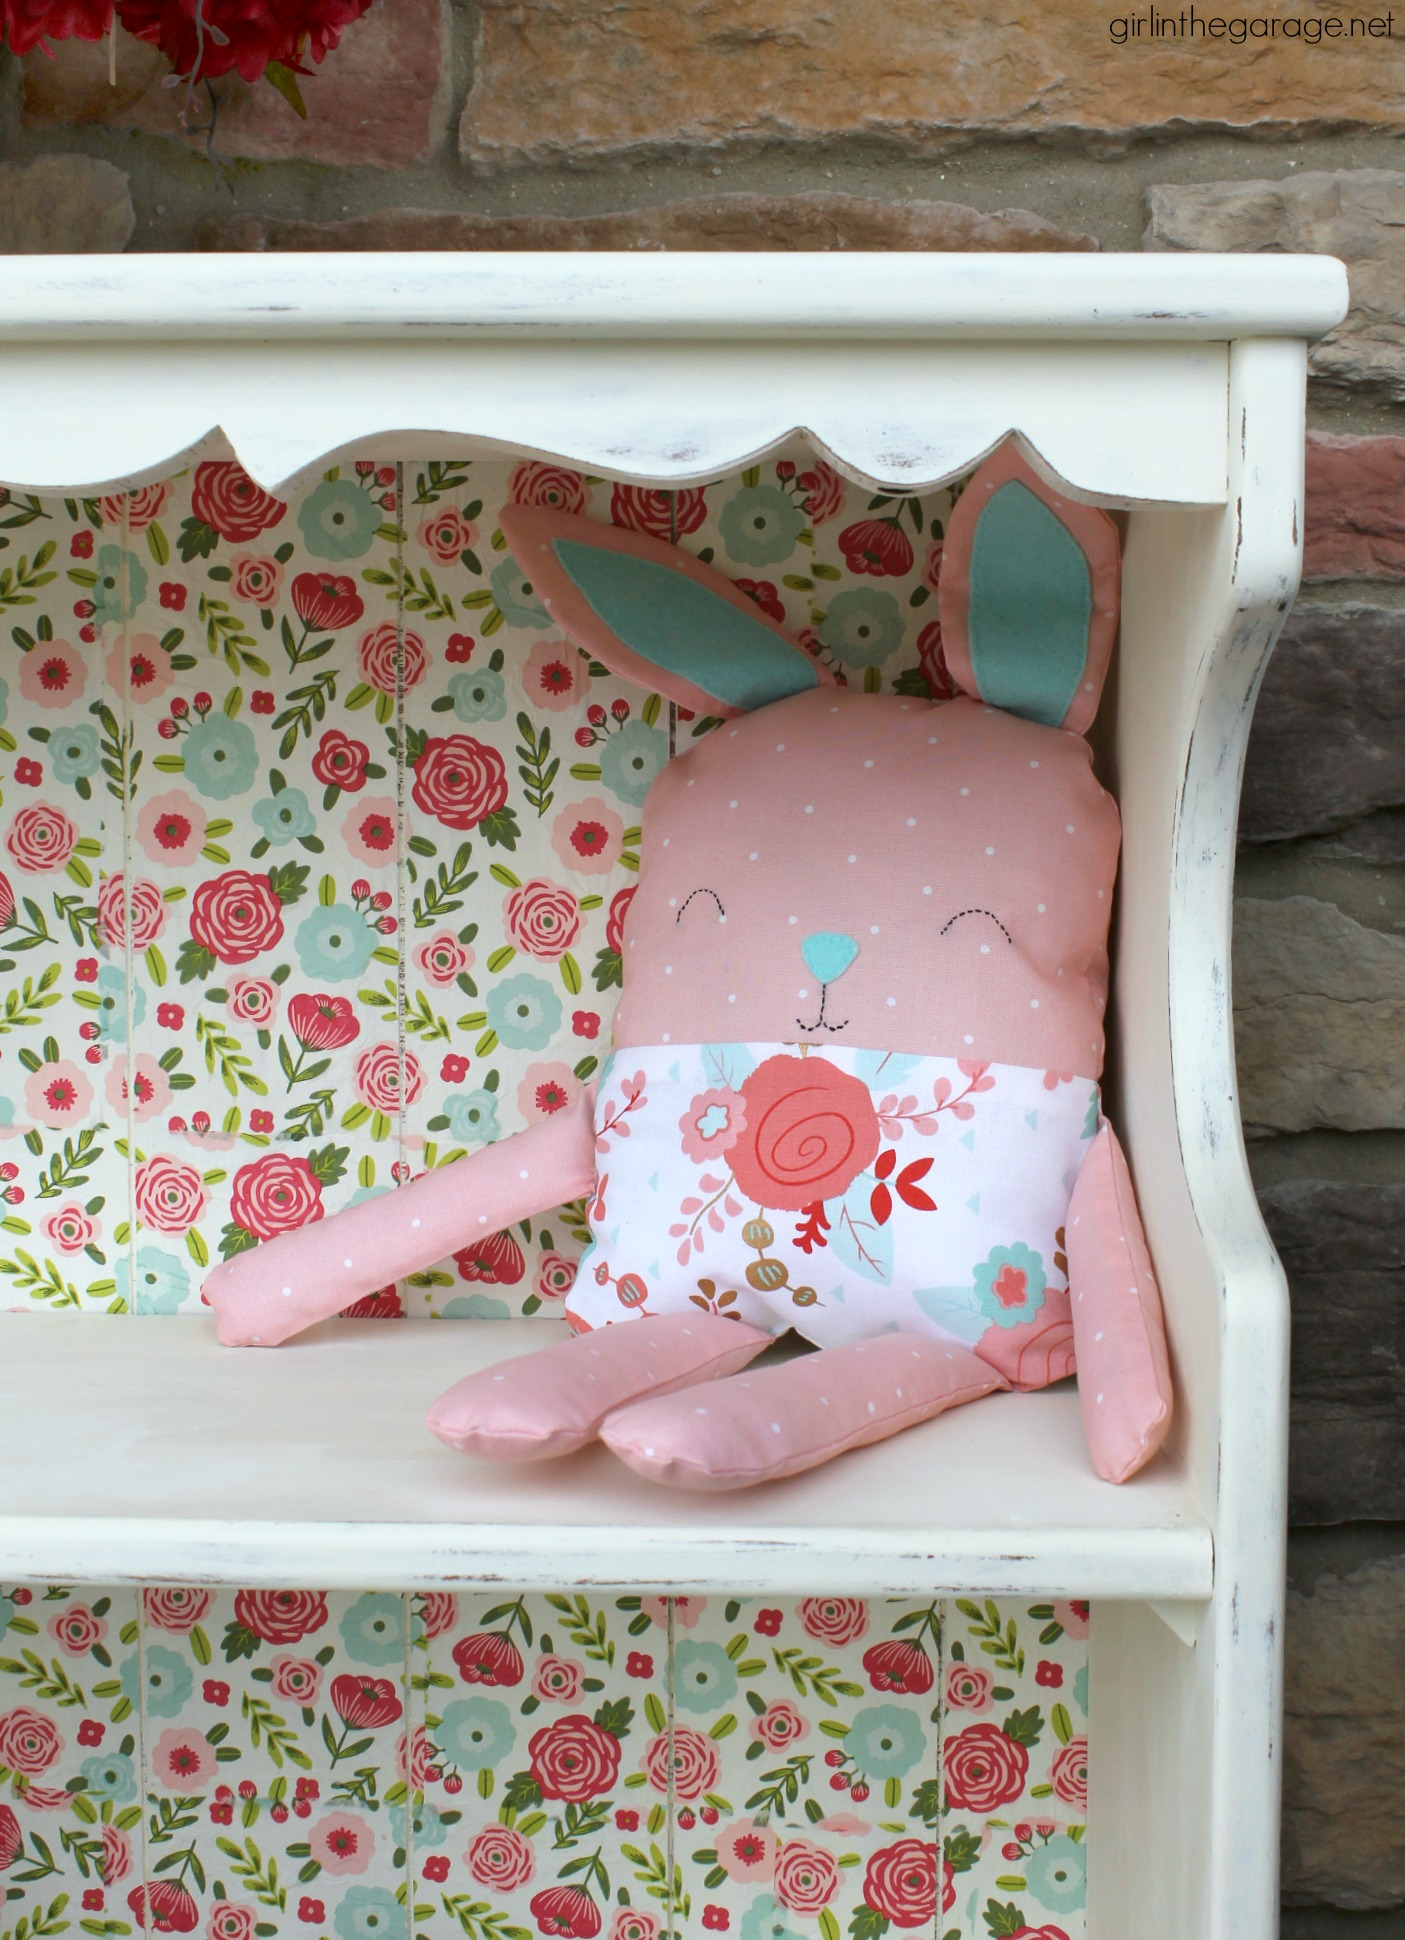 Vintage decoupage bookcase makeover with Chalk Paint, Mod Podge, and napkins - DIY tutorial by Girl in the Garage